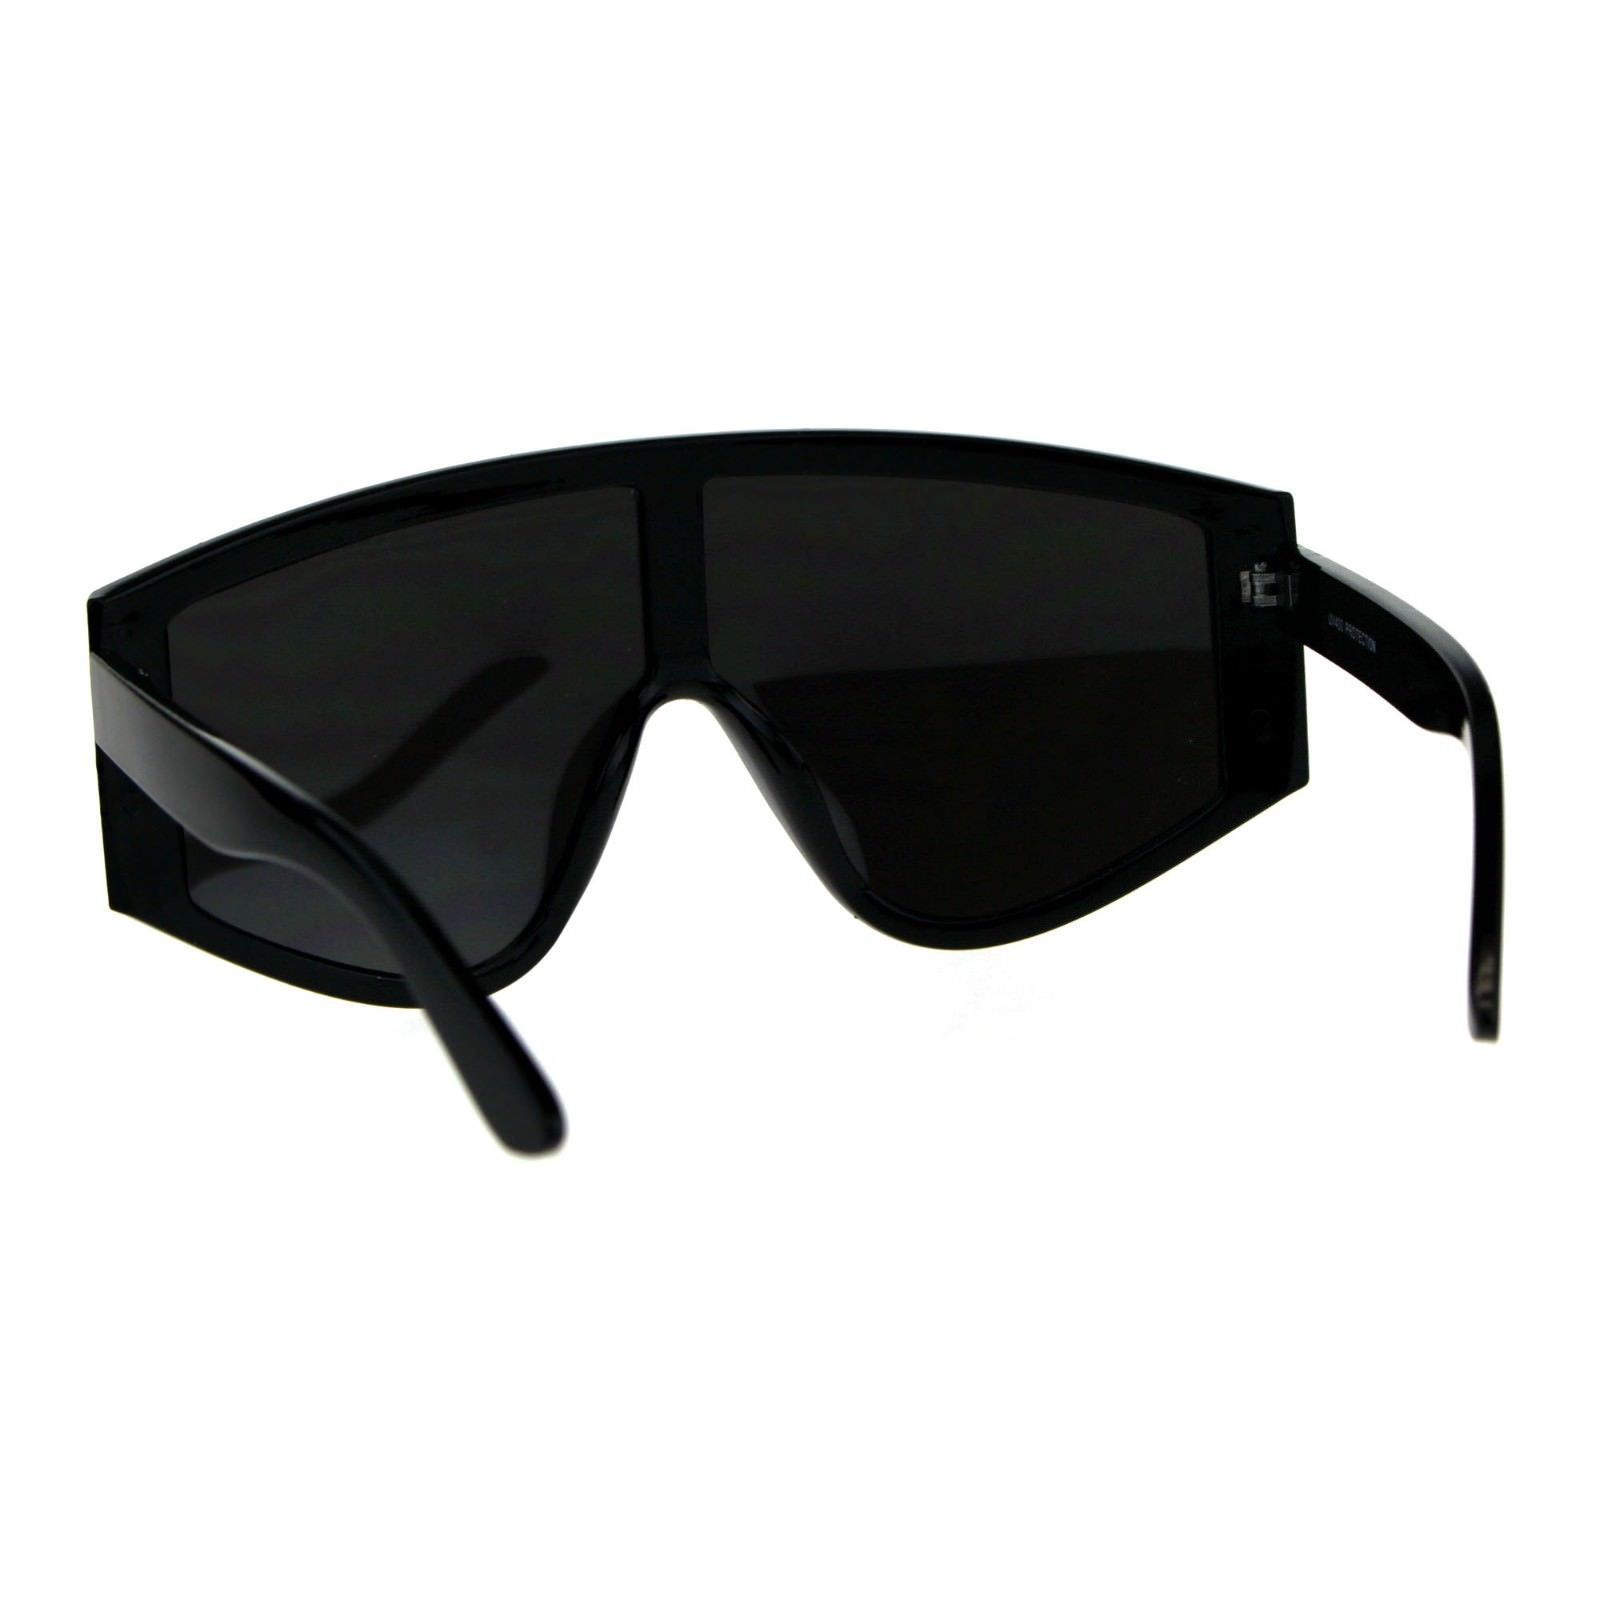 Super Oversized Goggle Style Sunglasses Arched Top Shield Fashion Mirror Lens